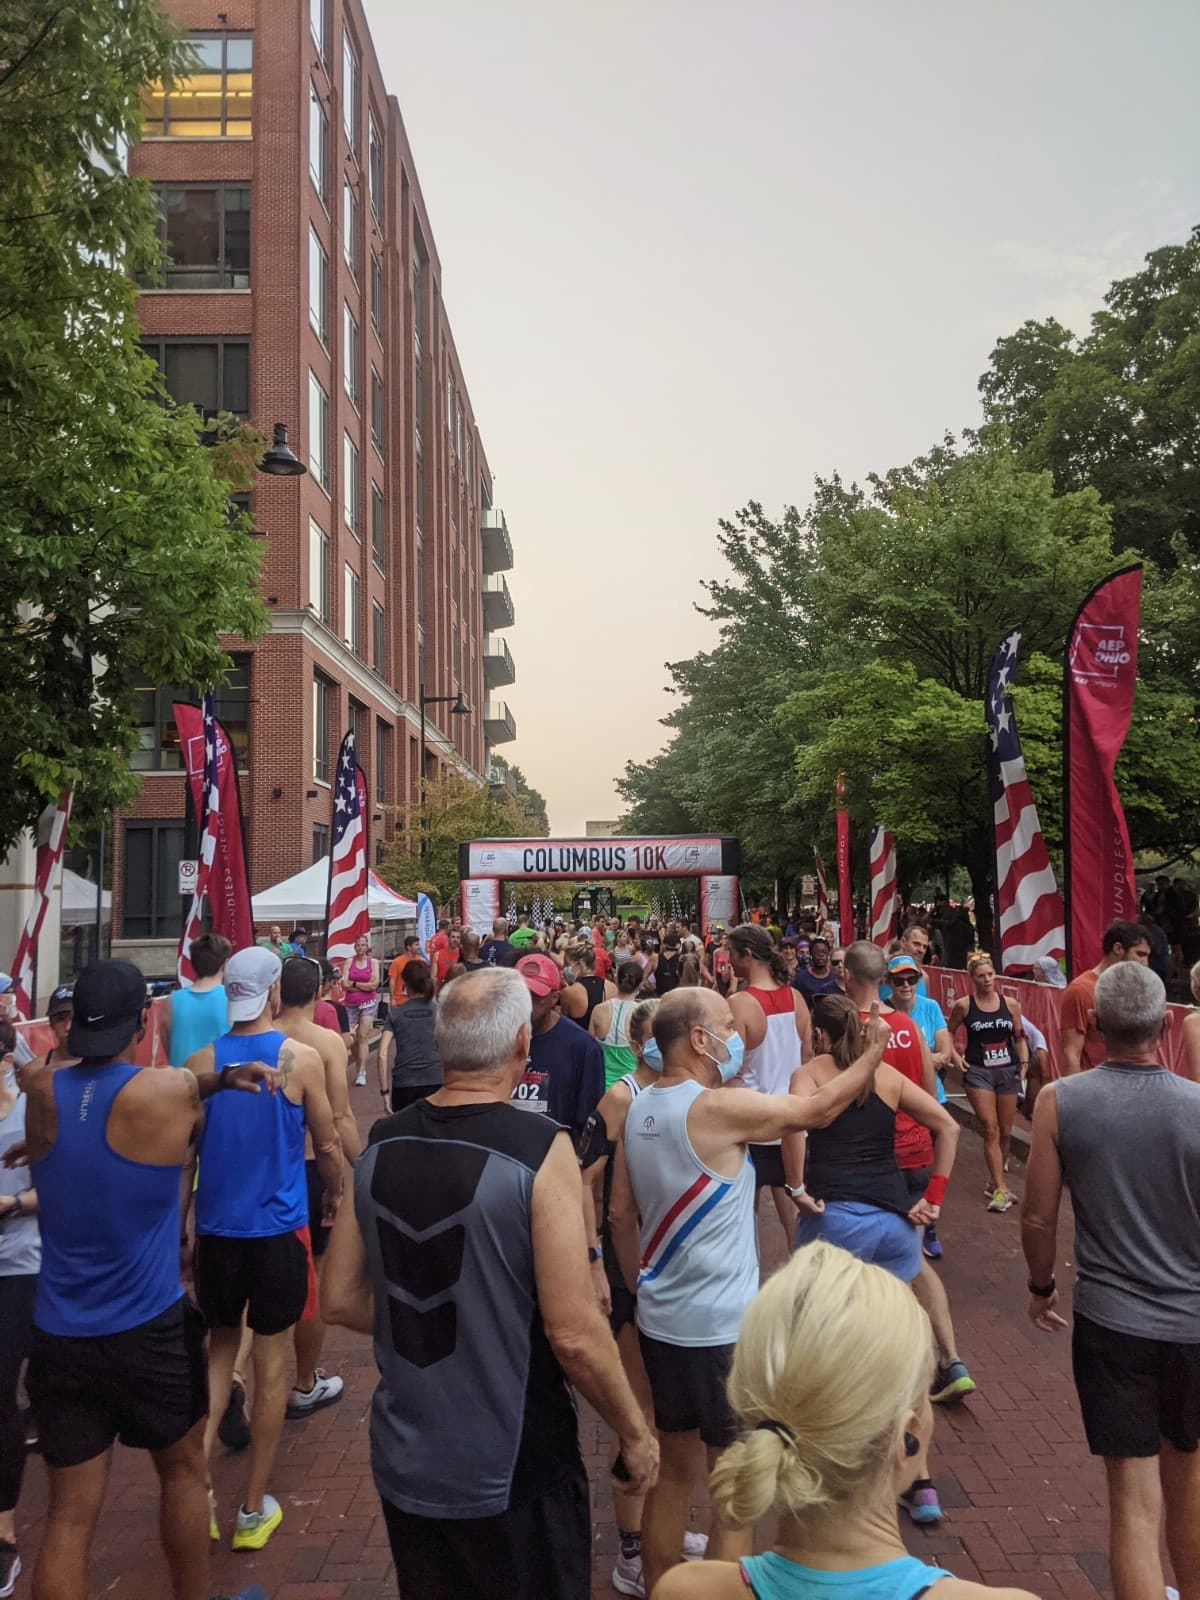 Starting arch of the Columbus 10k